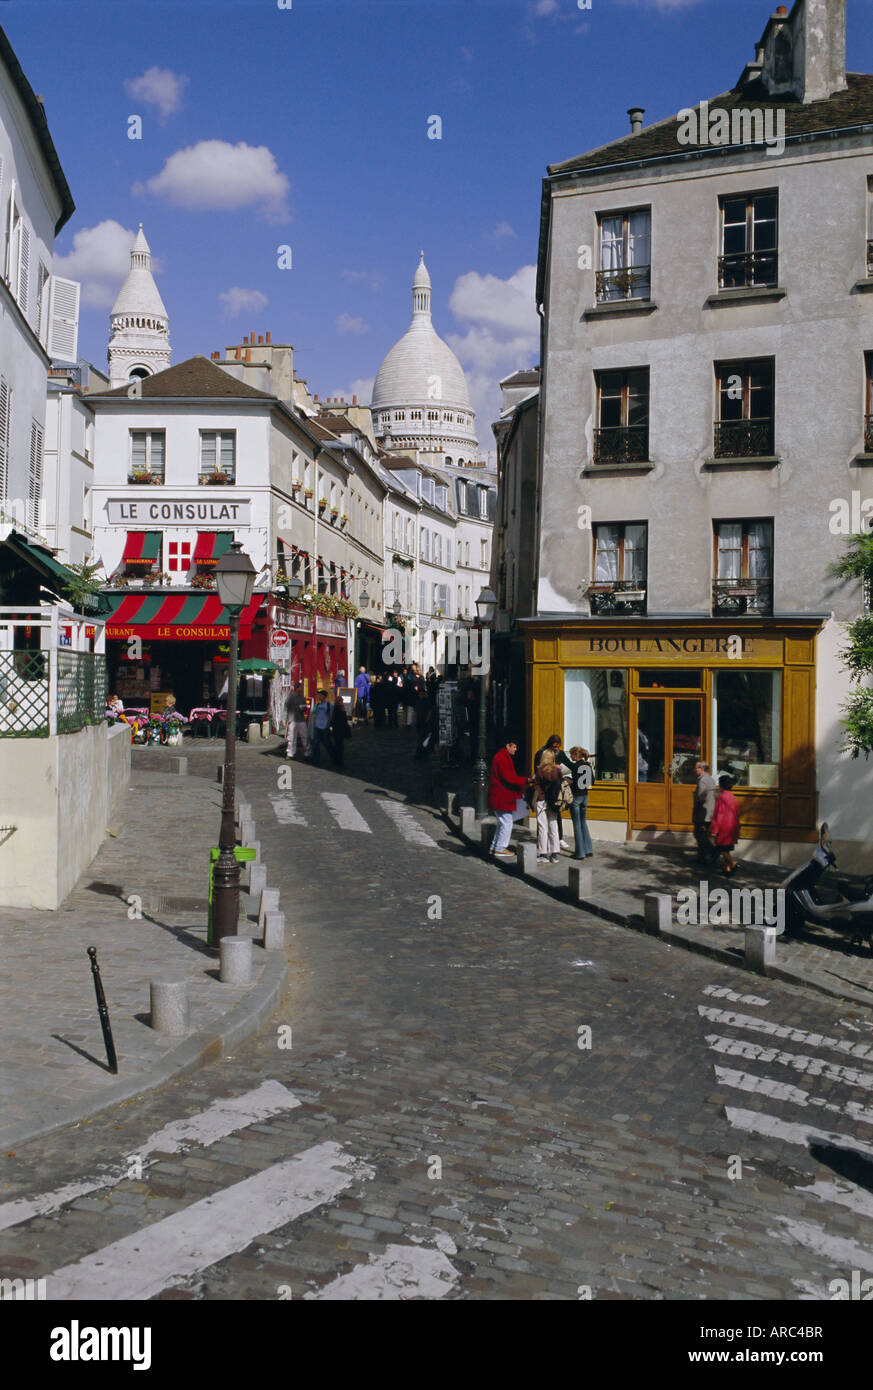 Street scene and the dome of the basilica of Sacre Coeur, Montmartre, Paris, France, Europe - Stock Image